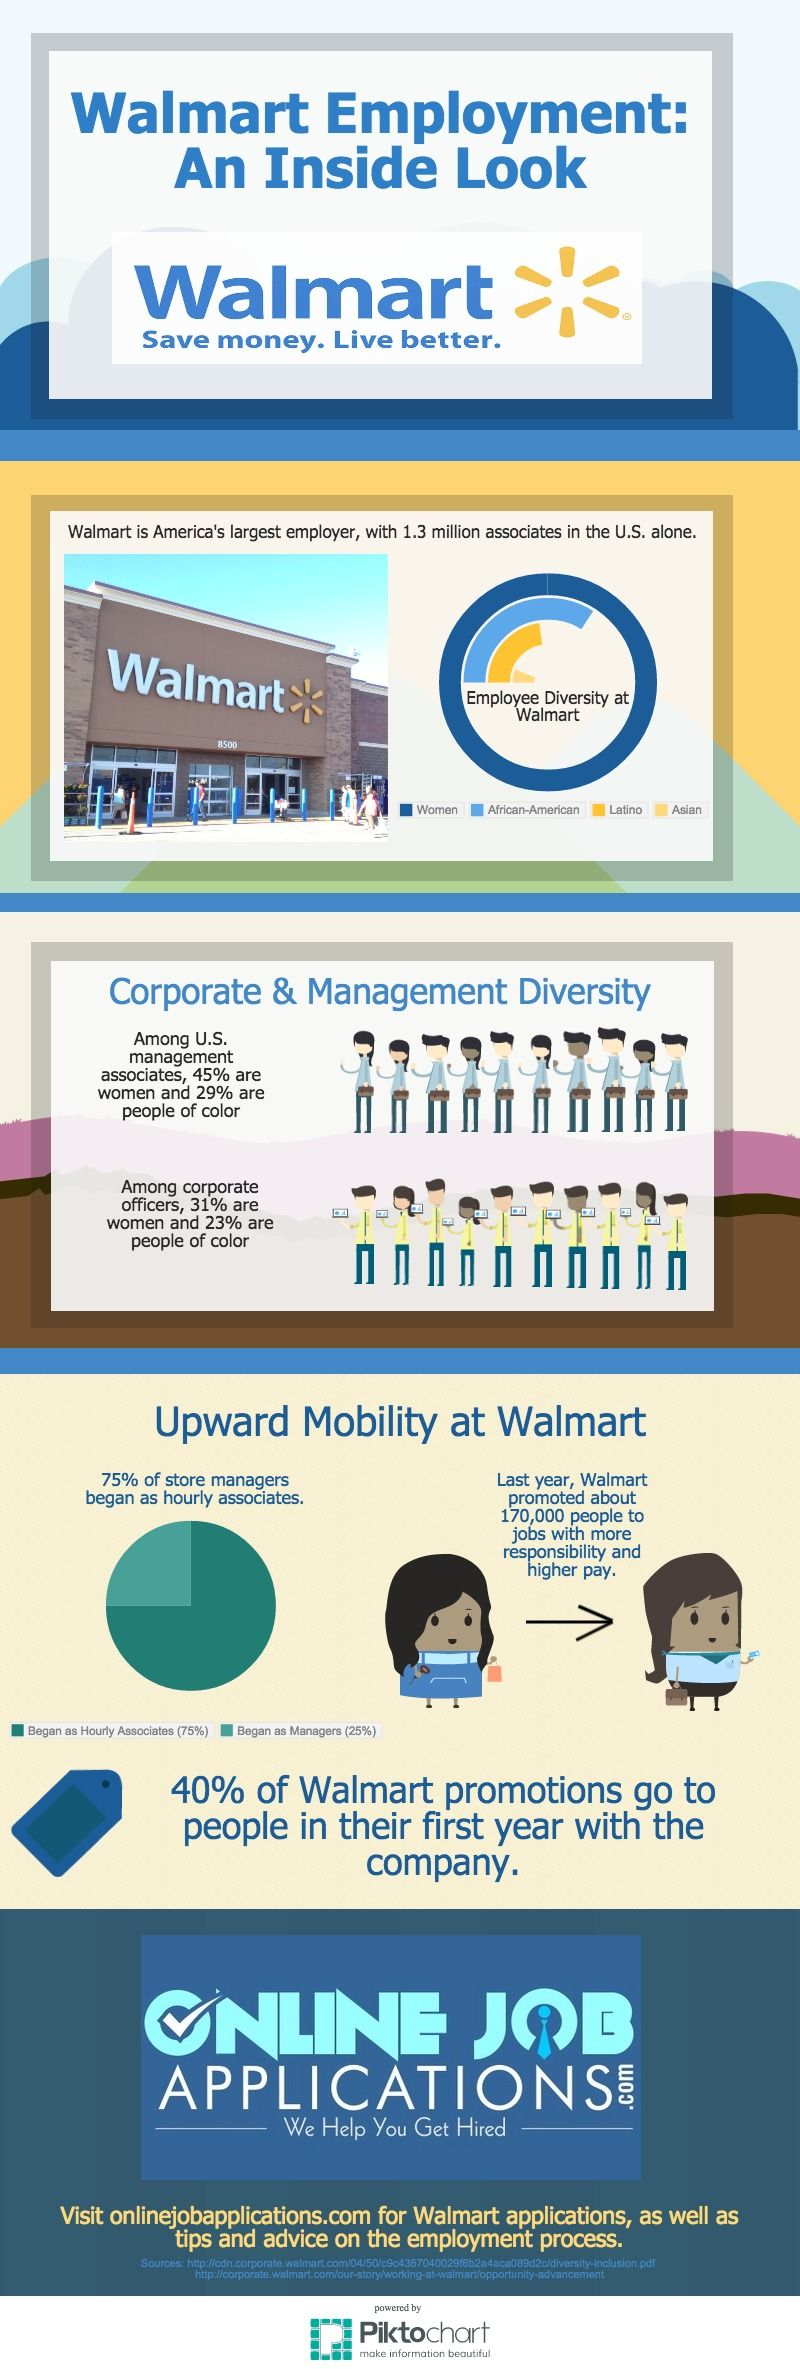 Walmart Application and Employee Demographics (With images